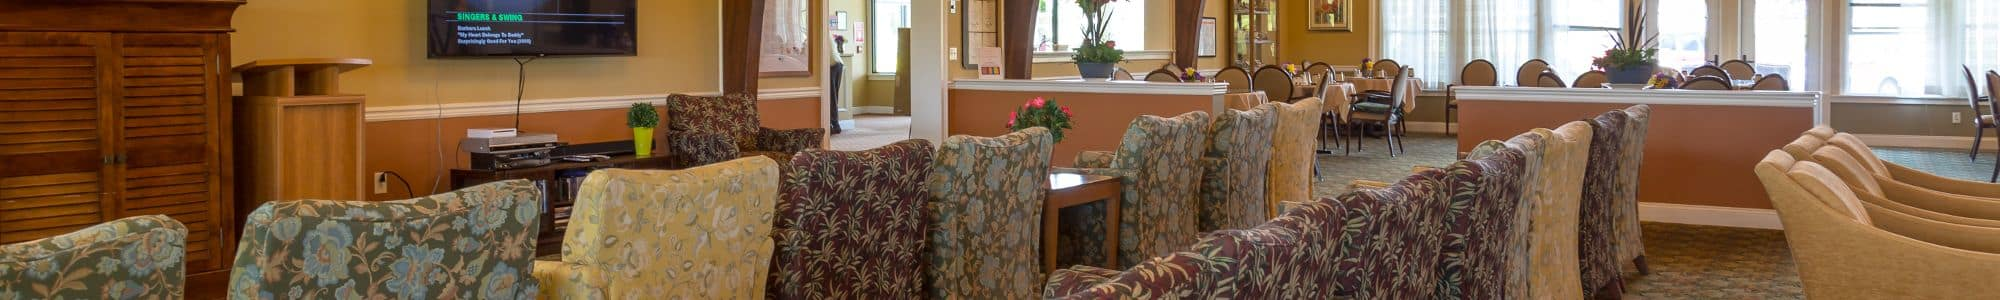 Services and amenities offered at Bentley Assisted Living at Branchville